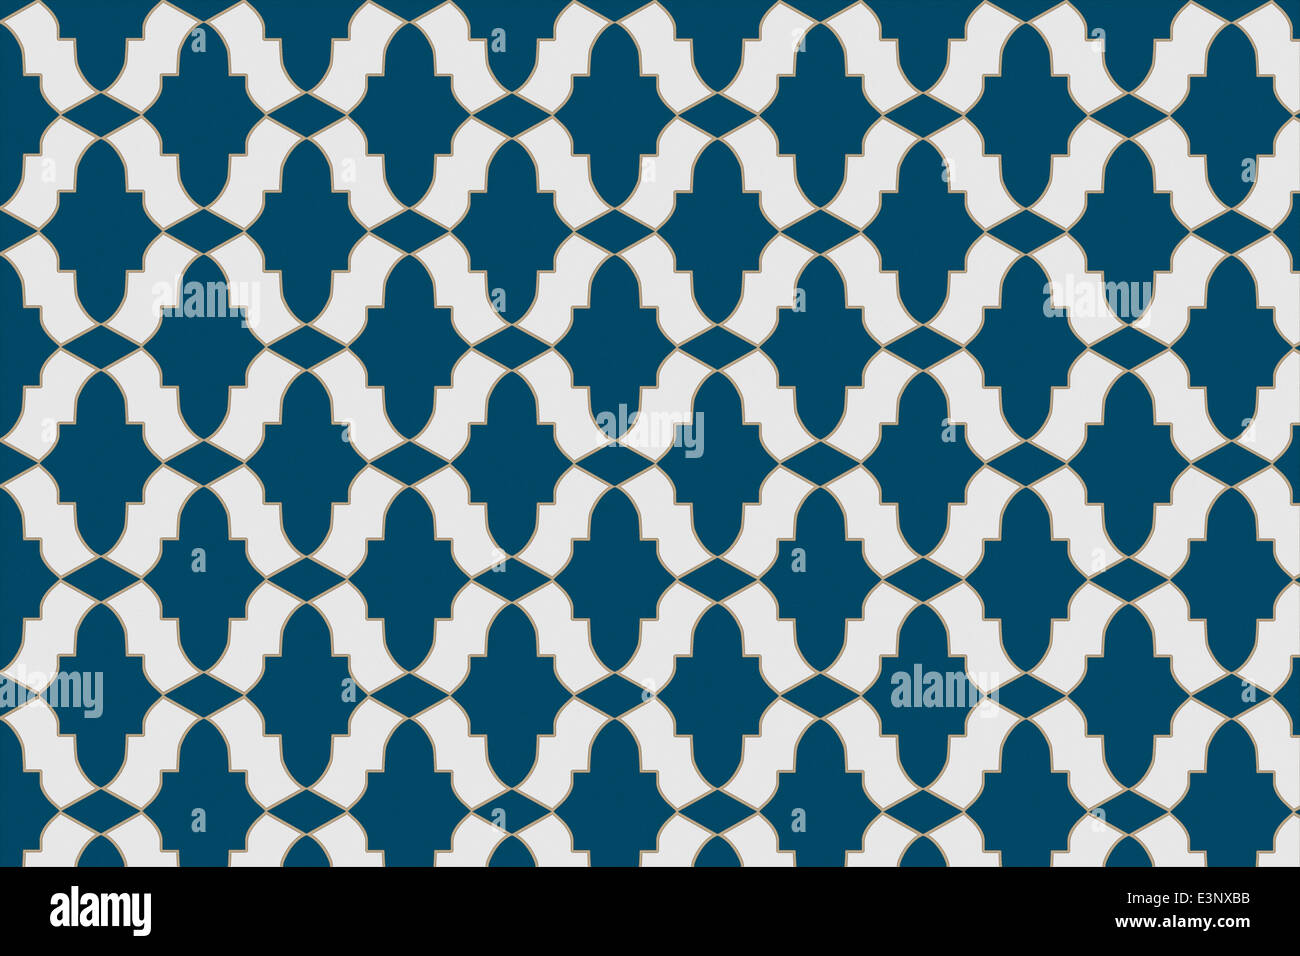 Area of mosaic tiles with three basic tile shapes to create a pattern based on a Moroccan design in blue and white Stock Photo